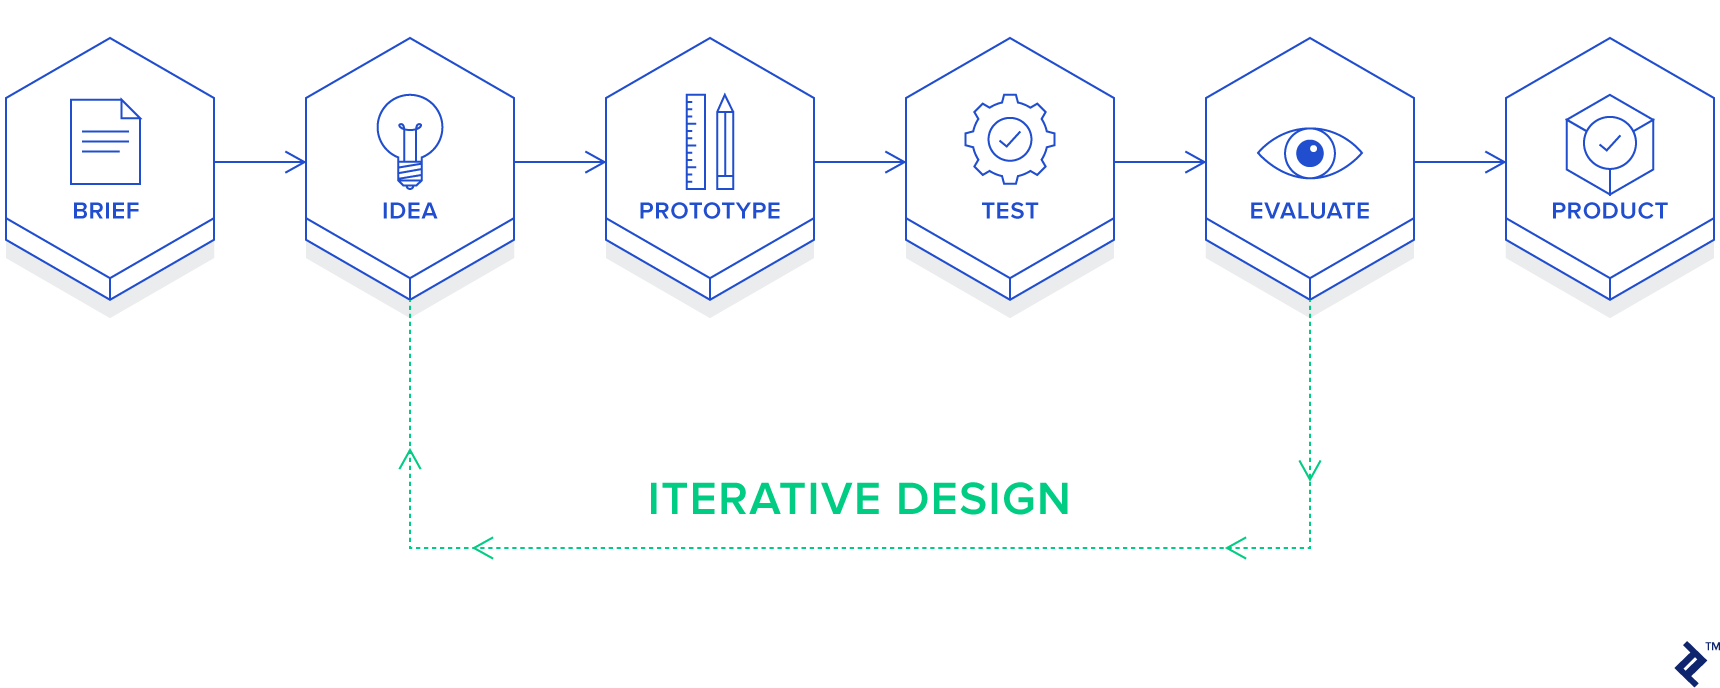 Generative design is based on an iterative process